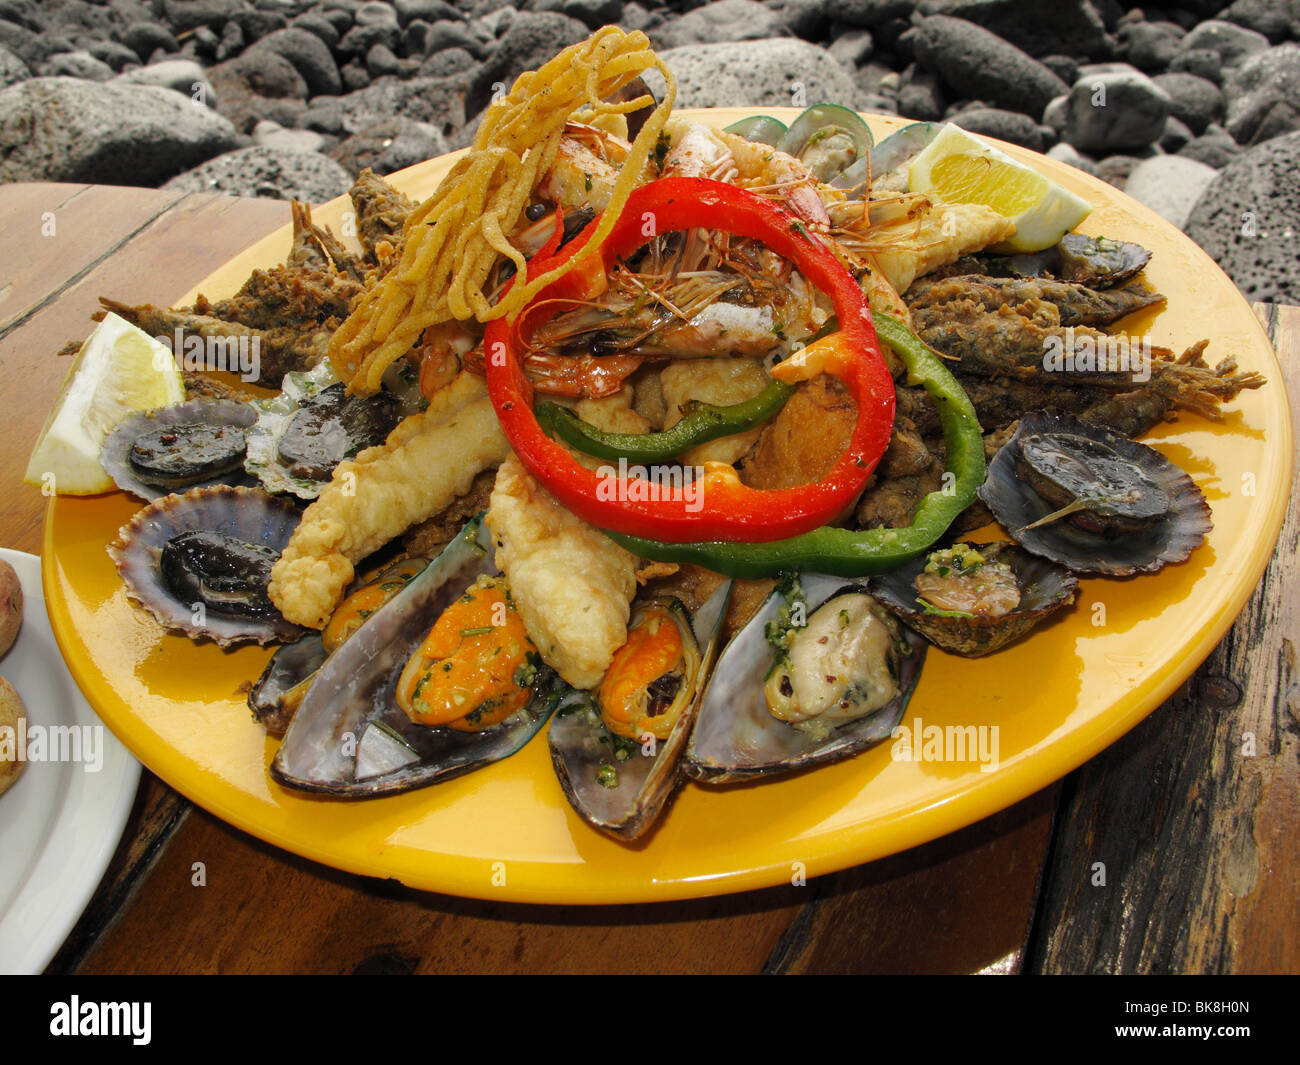 Seafood dish, La Palma, Canary Islands, Spain - Stock Image